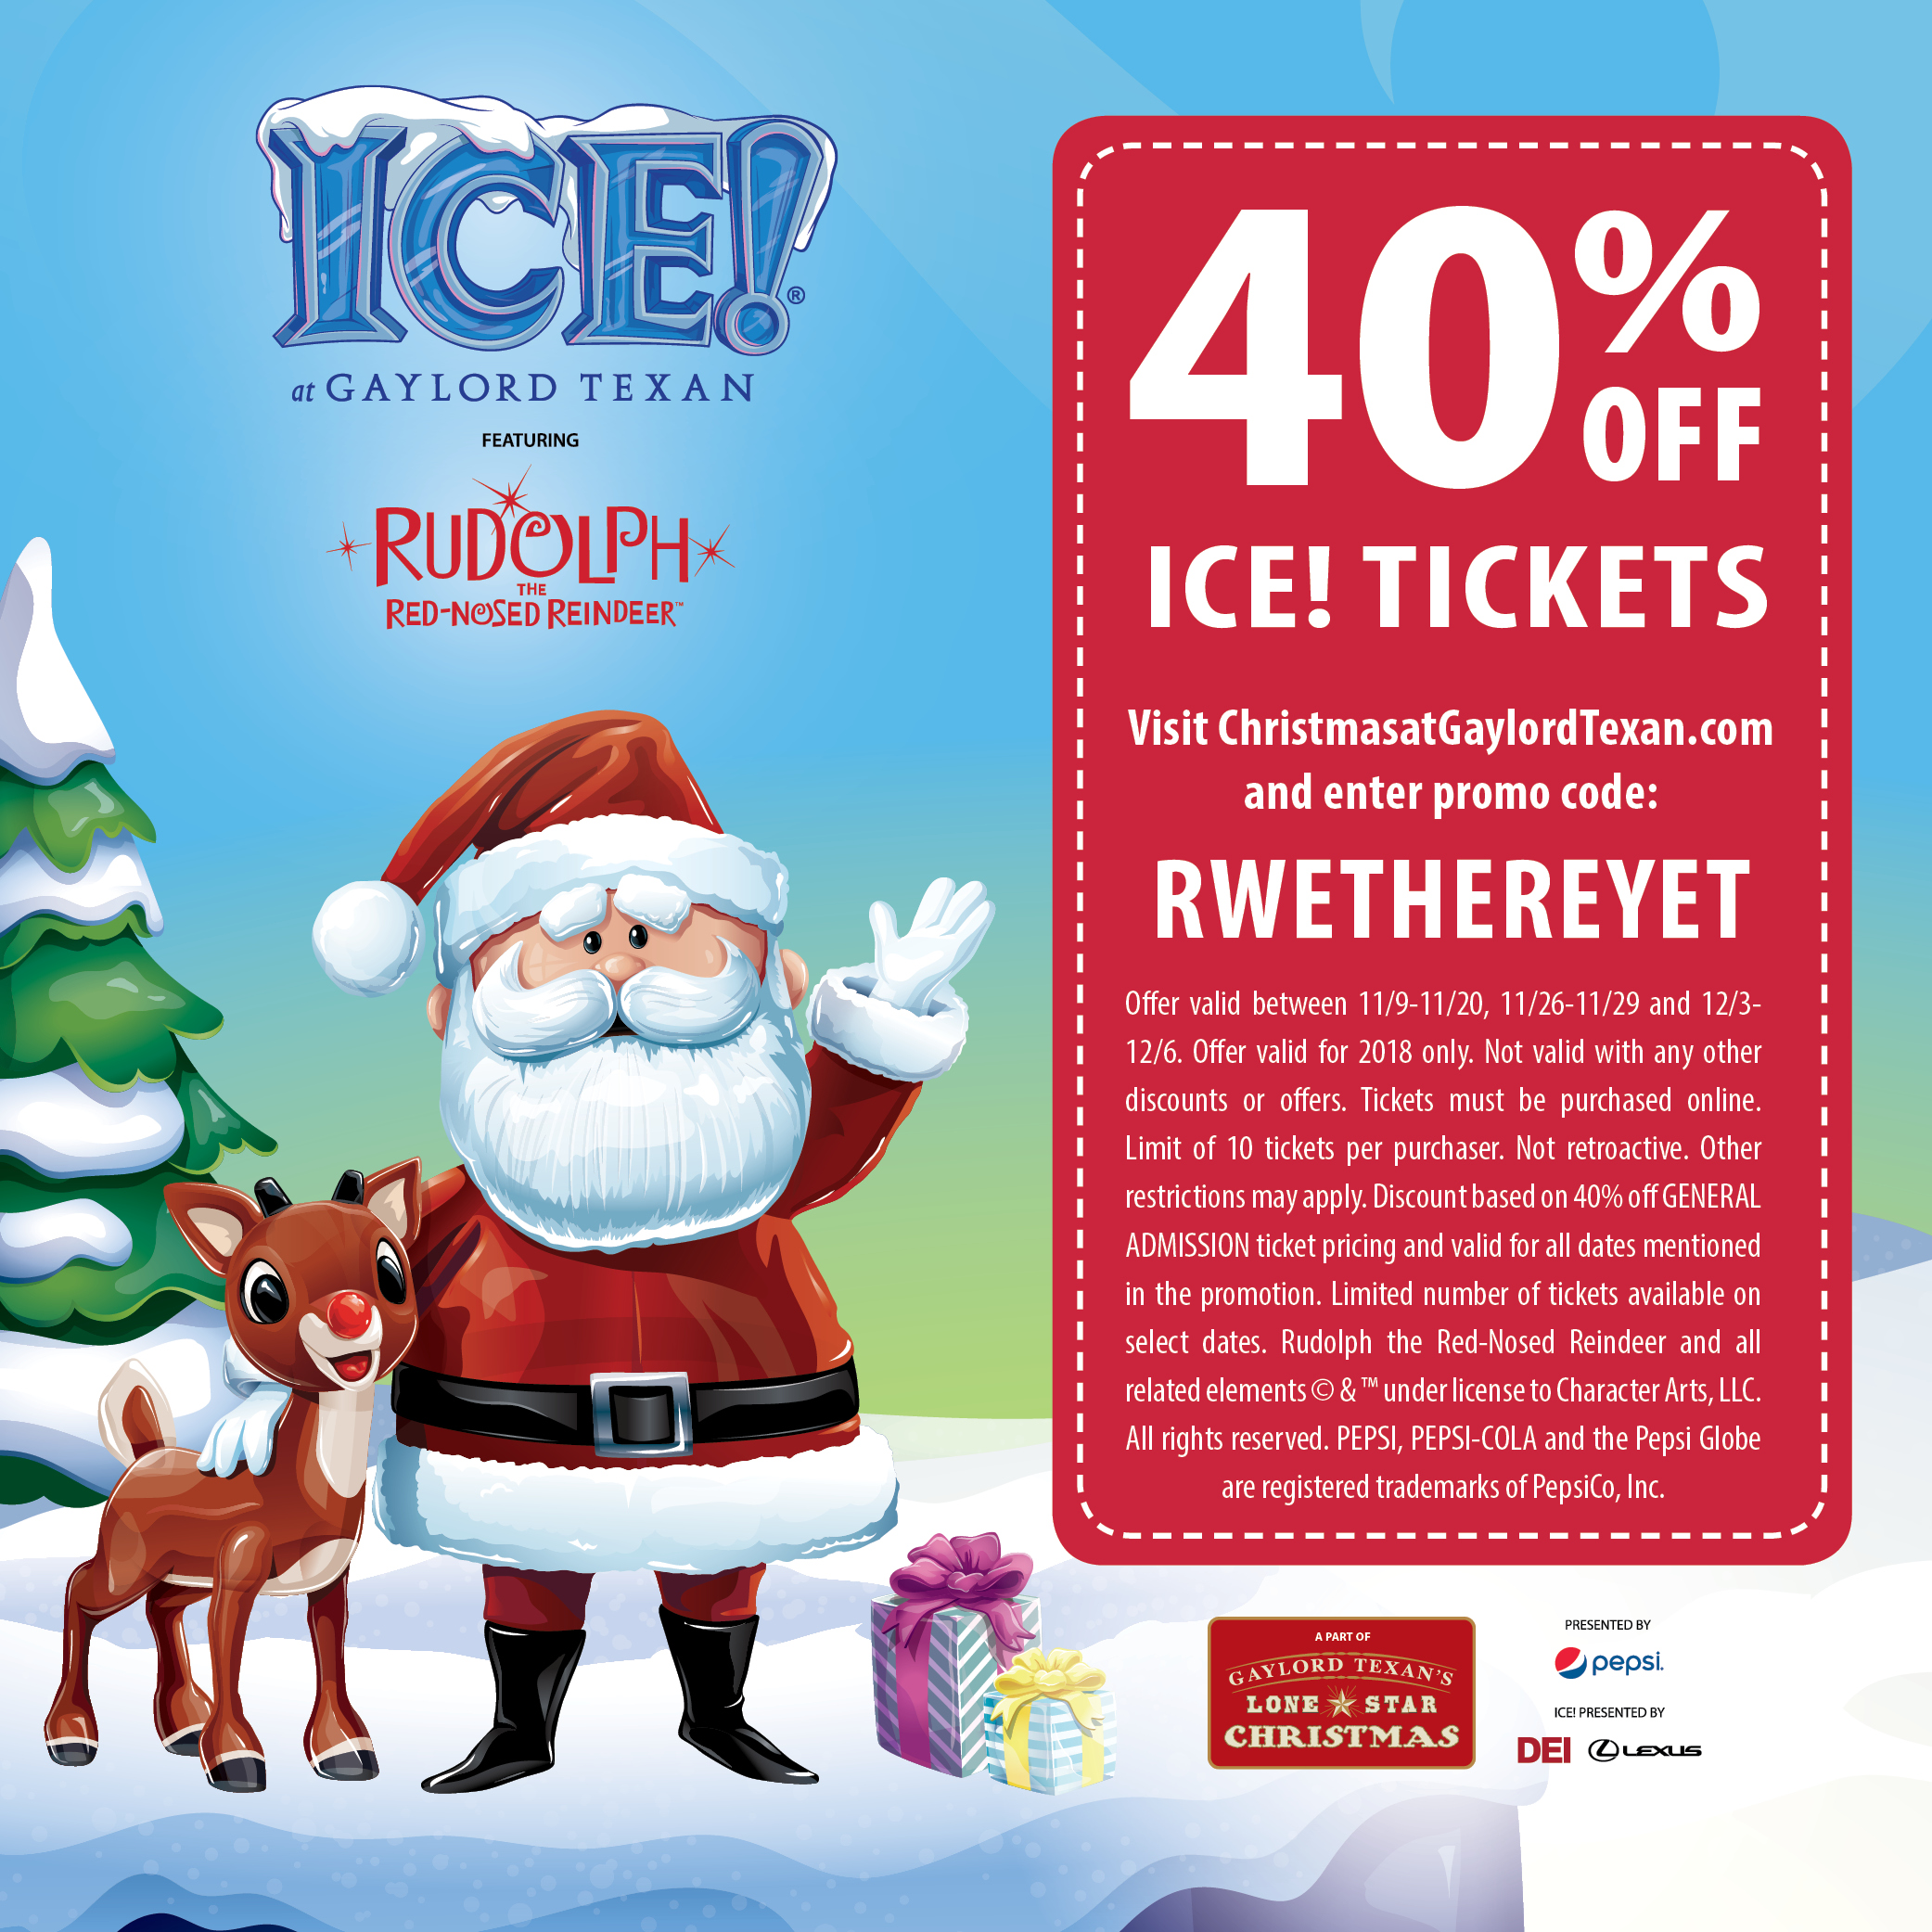 ICE! Coupon